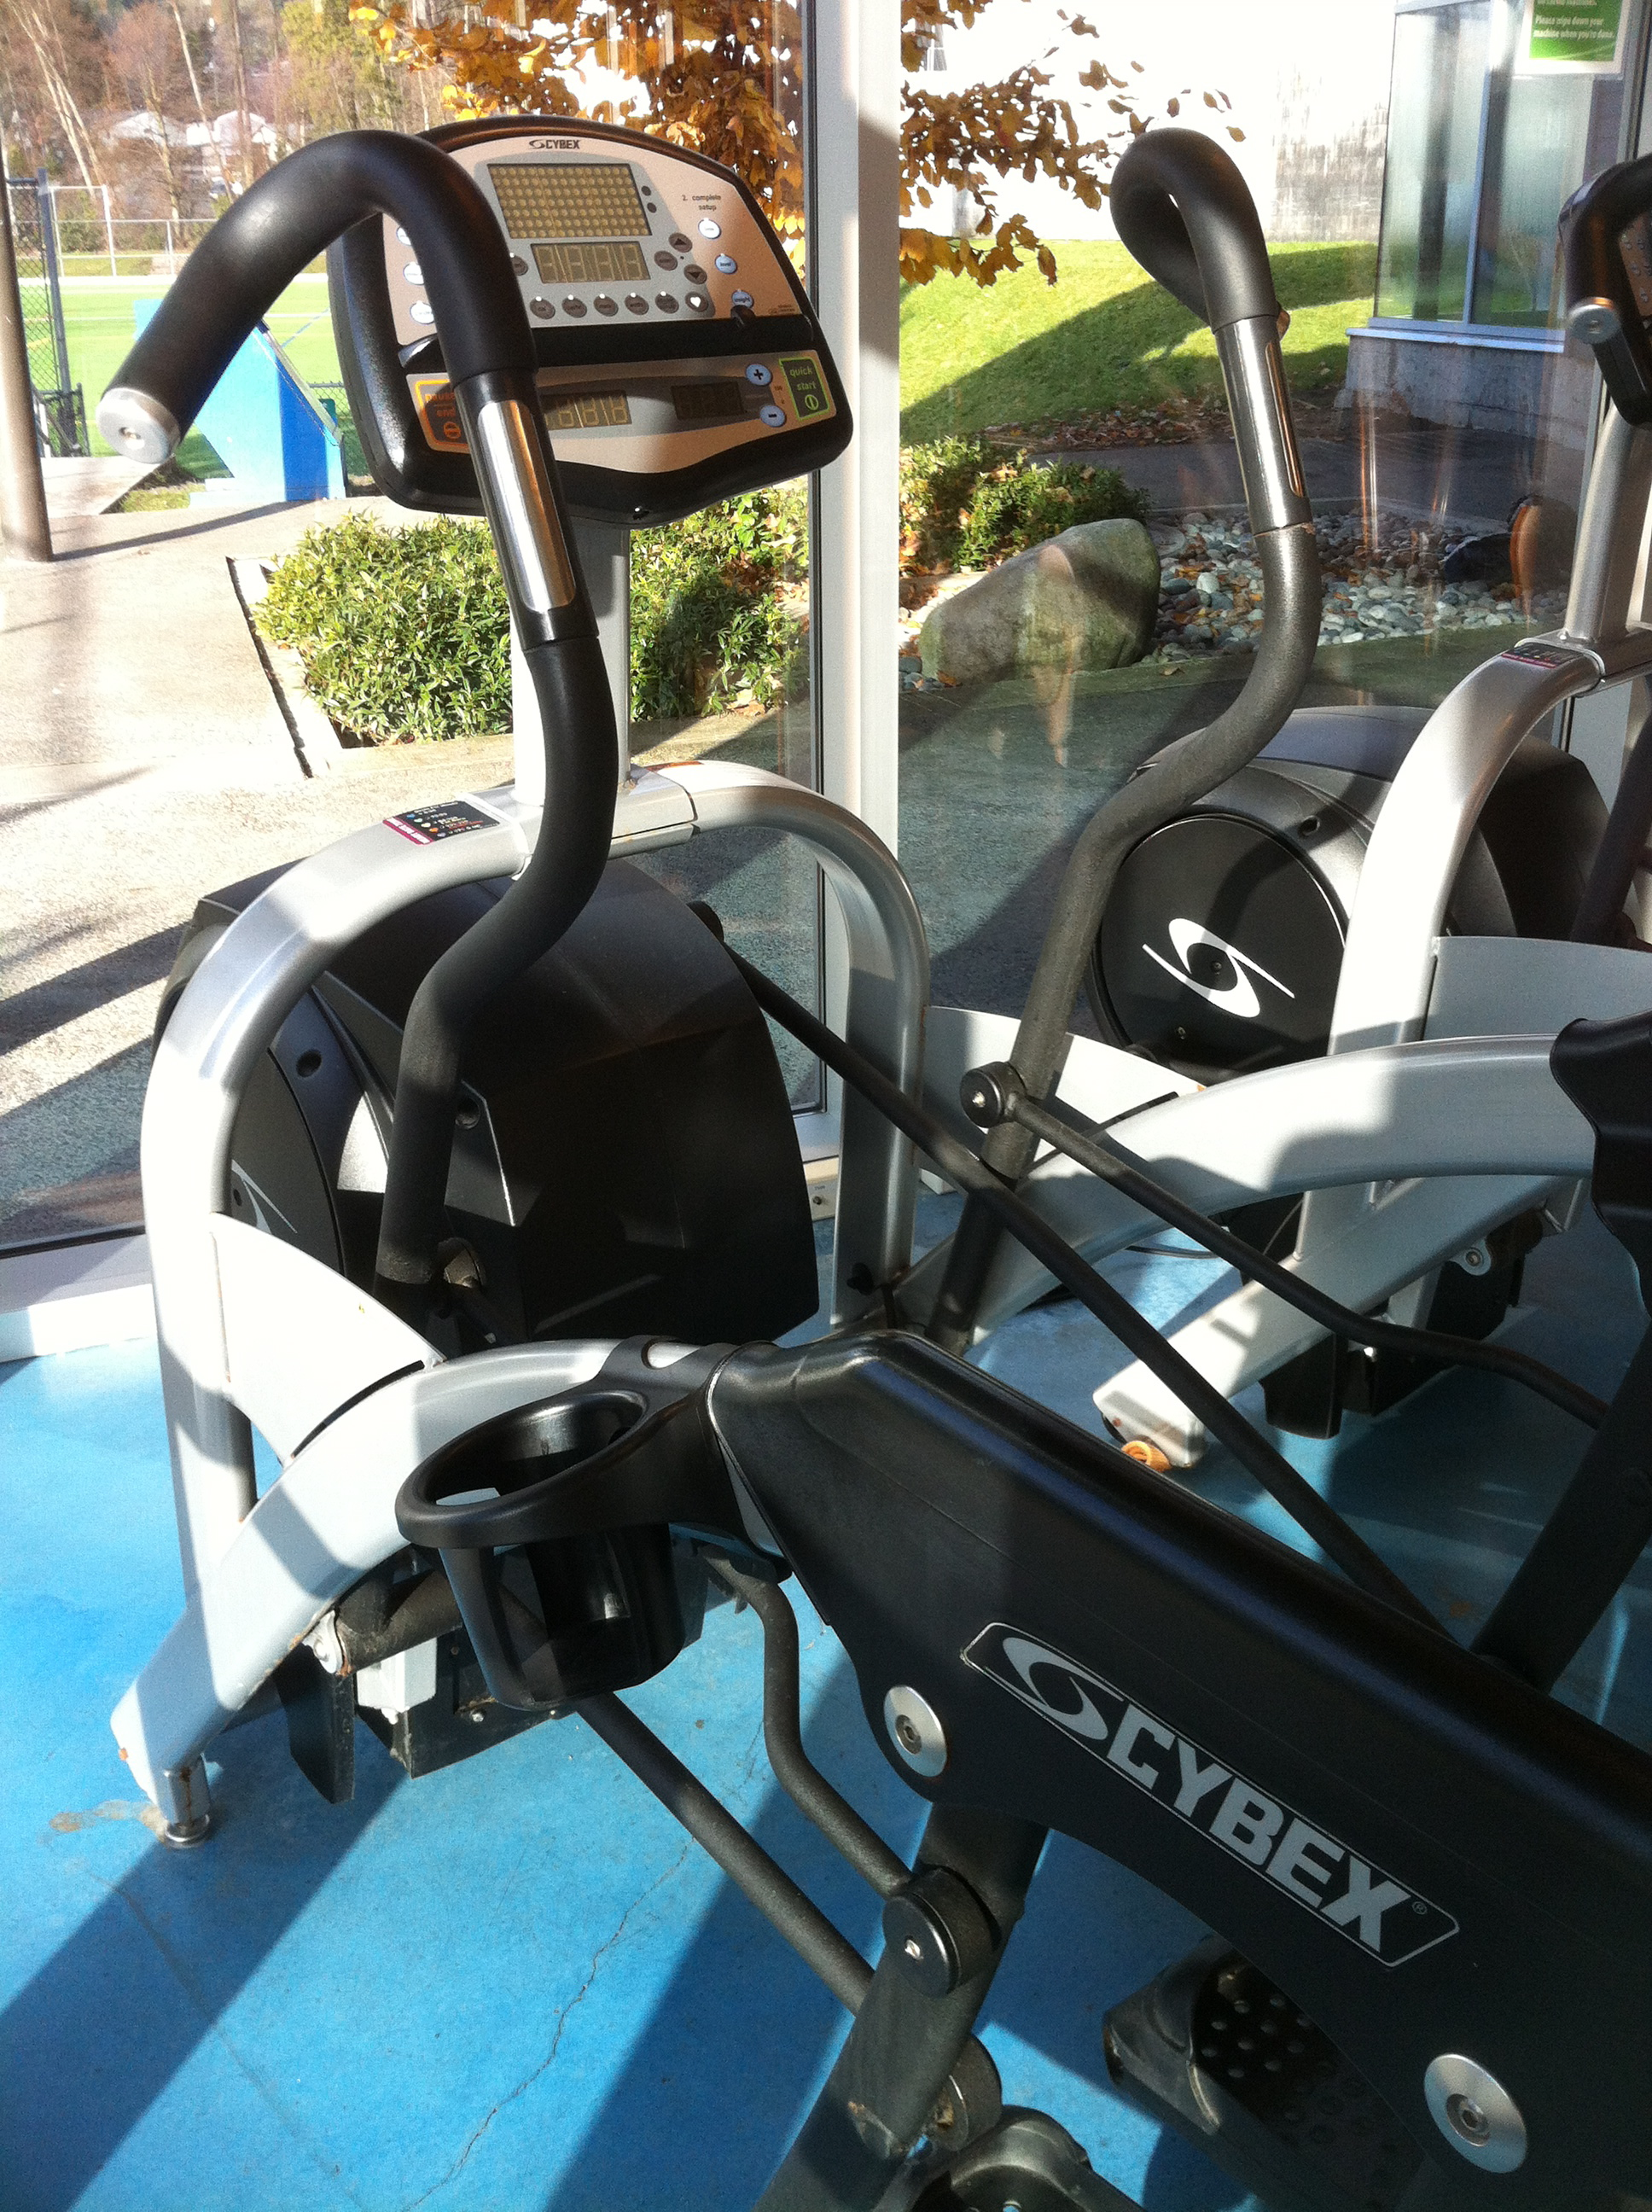 Cybex ARC Trainer review